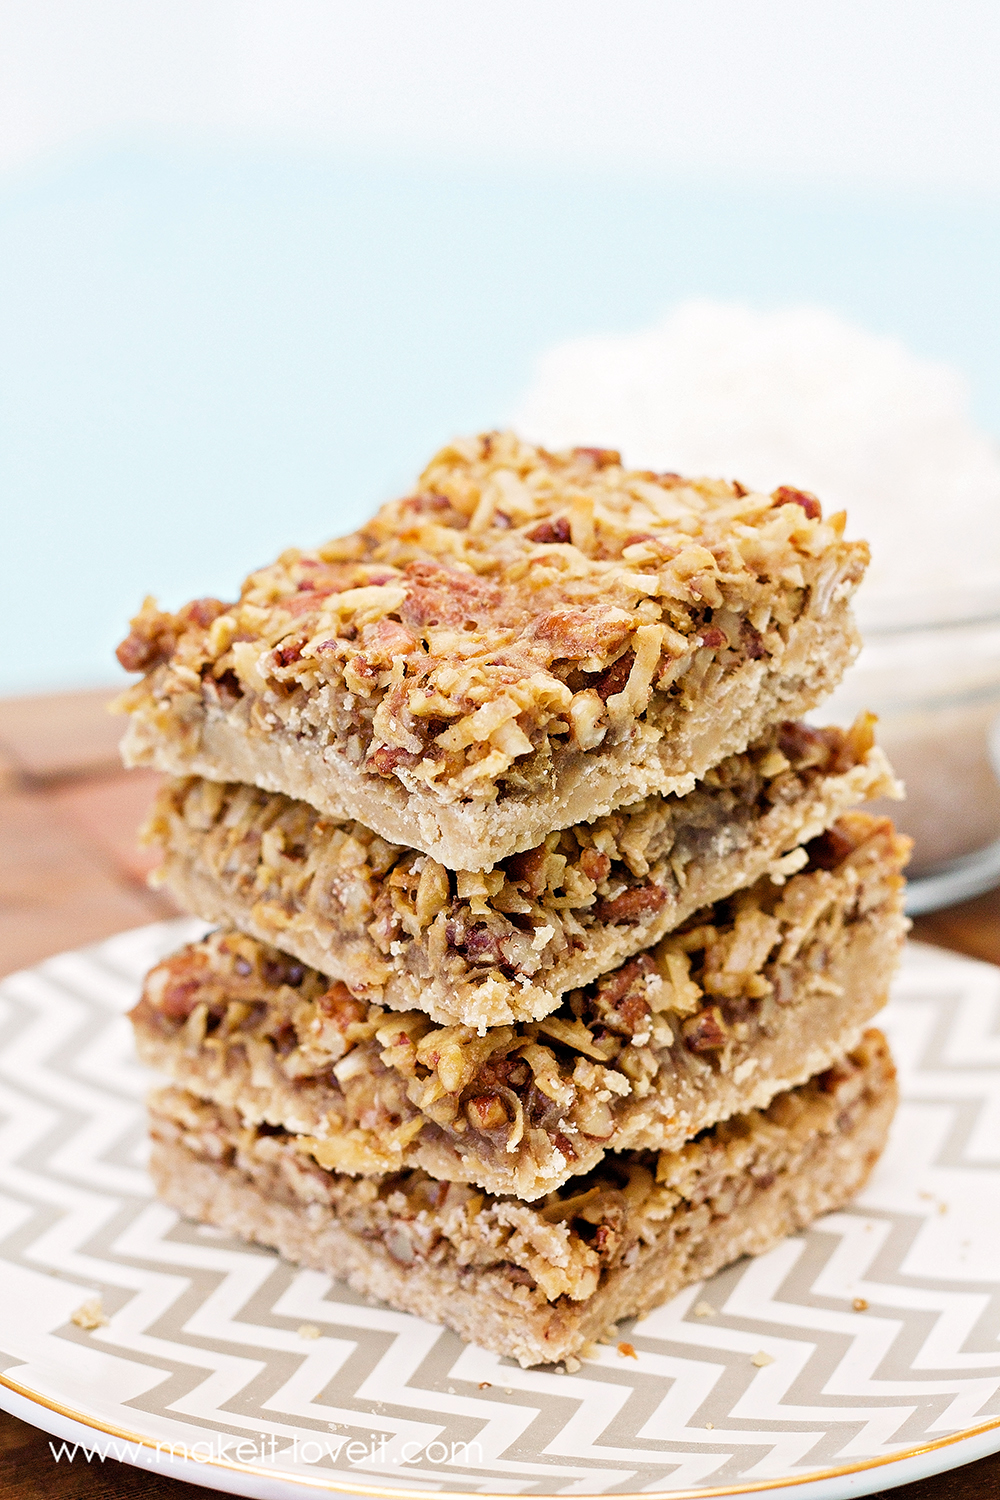 Chewy Coconut Pecan Bars...yum! (GLUTEN FREE version included)